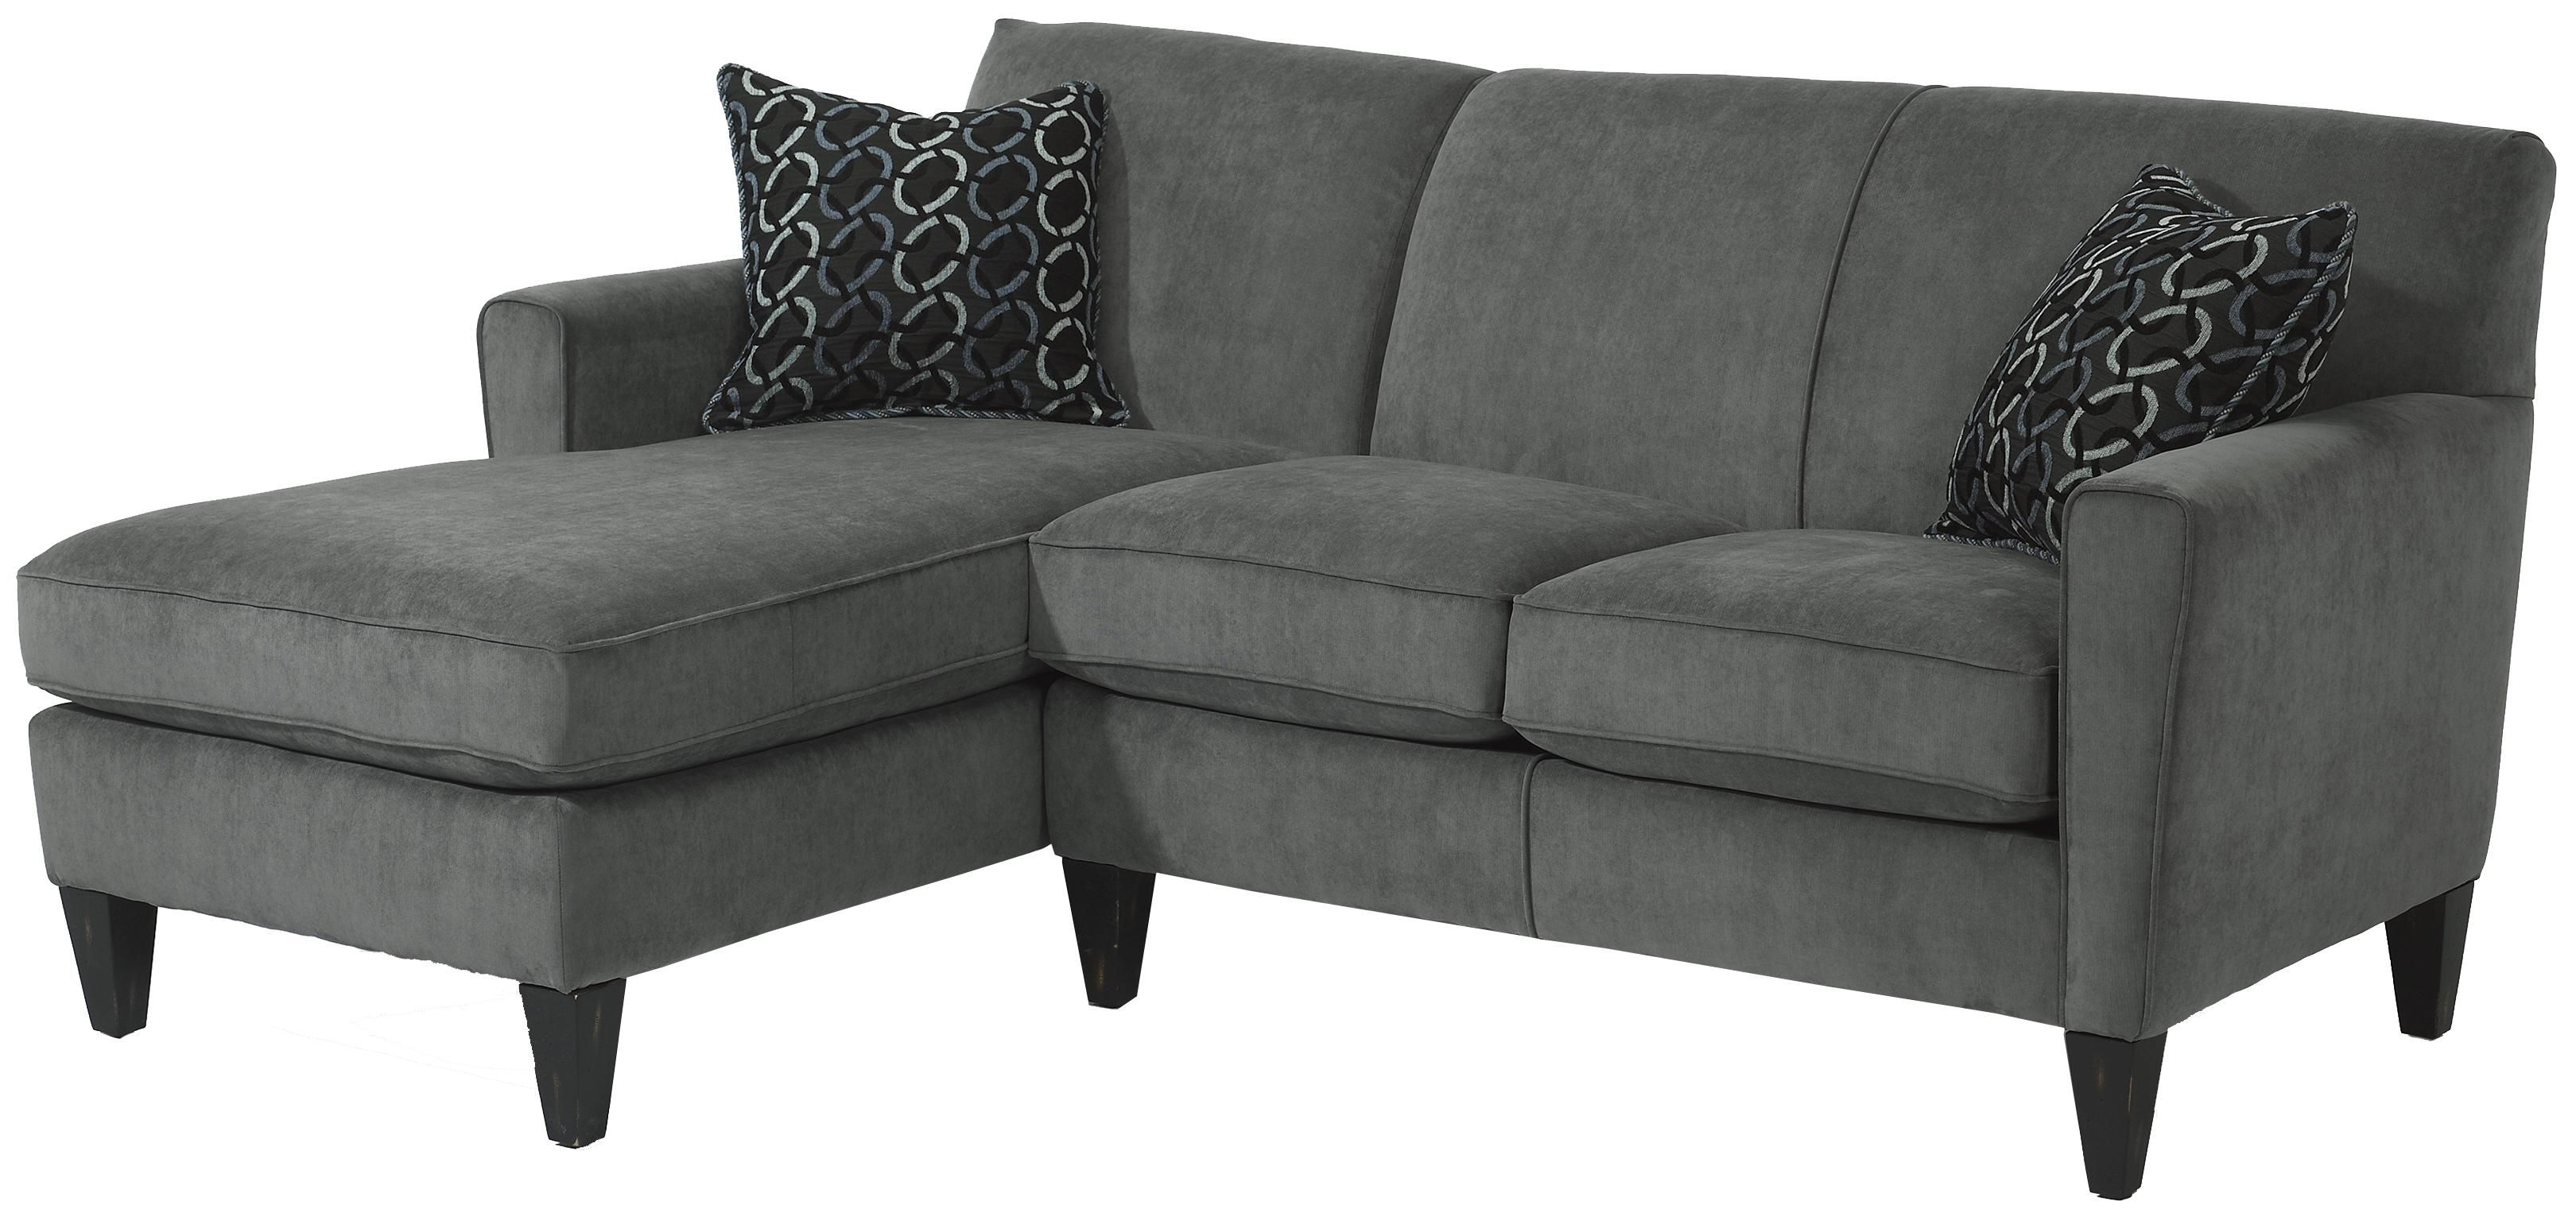 "Current Digby Sectional Sofaflexsteel – Only 81"" Across As Shown Here Inside Kansas City Mo Sectional Sofas (View 13 of 20)"